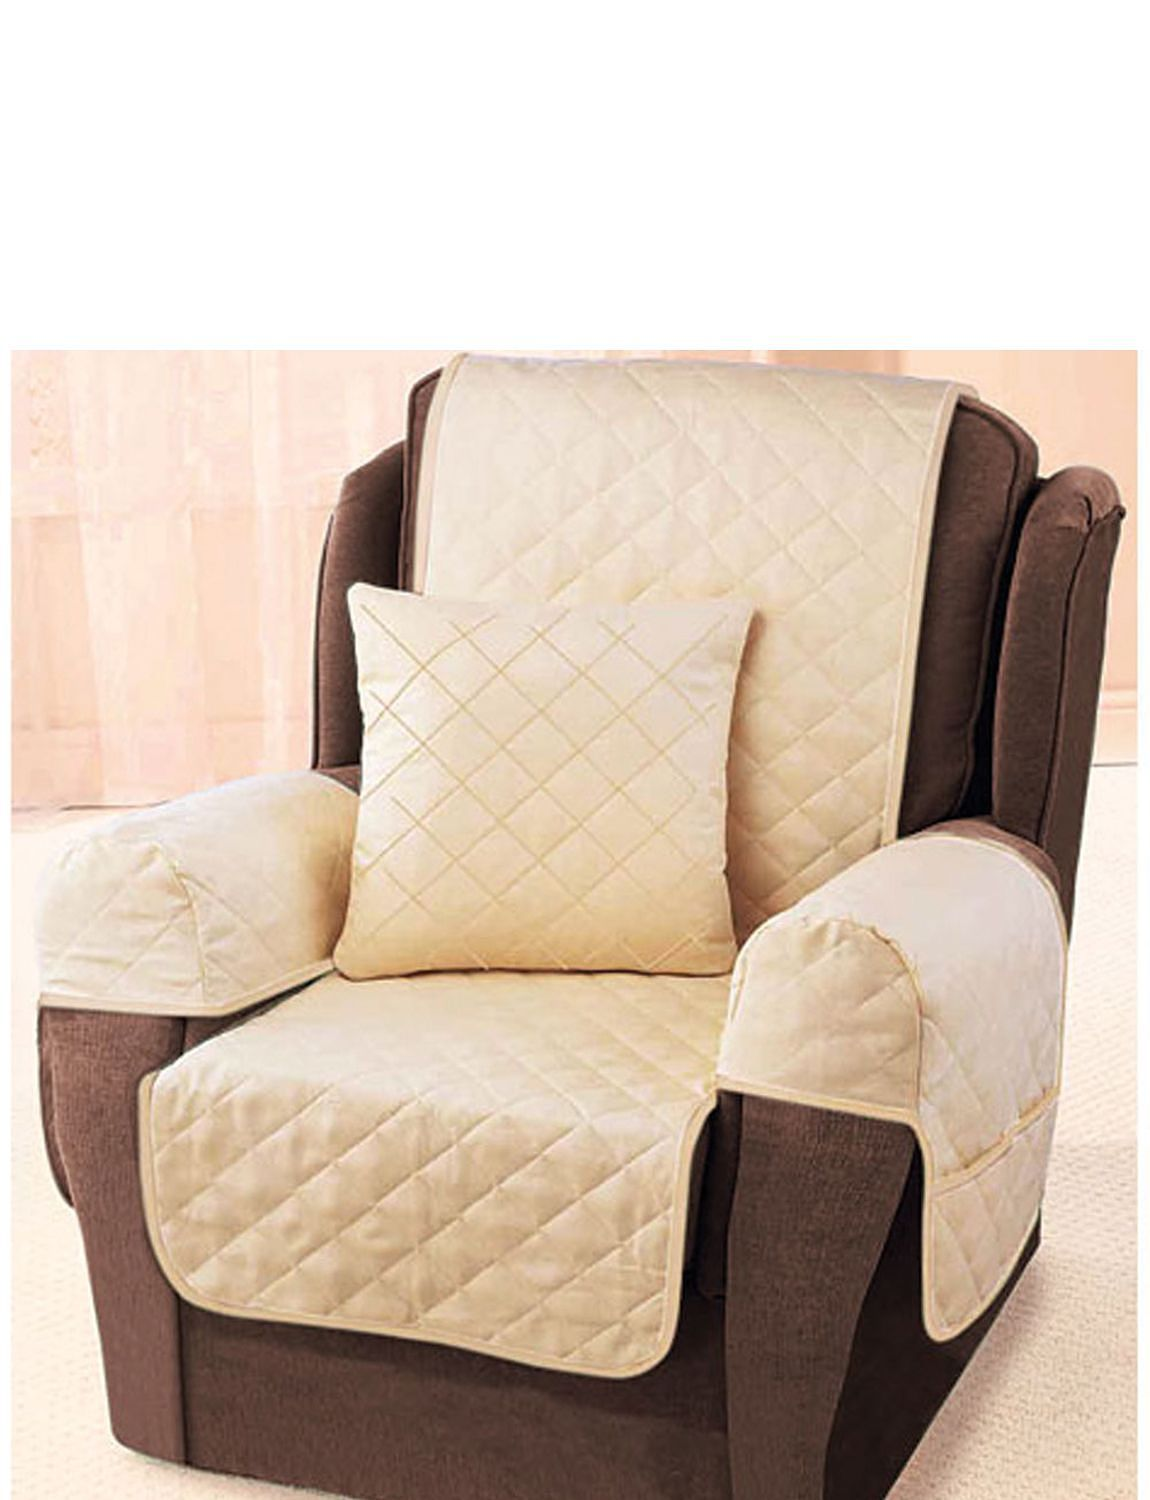 Chair Furniture Protector quilted chair protector & cover - washable | chums